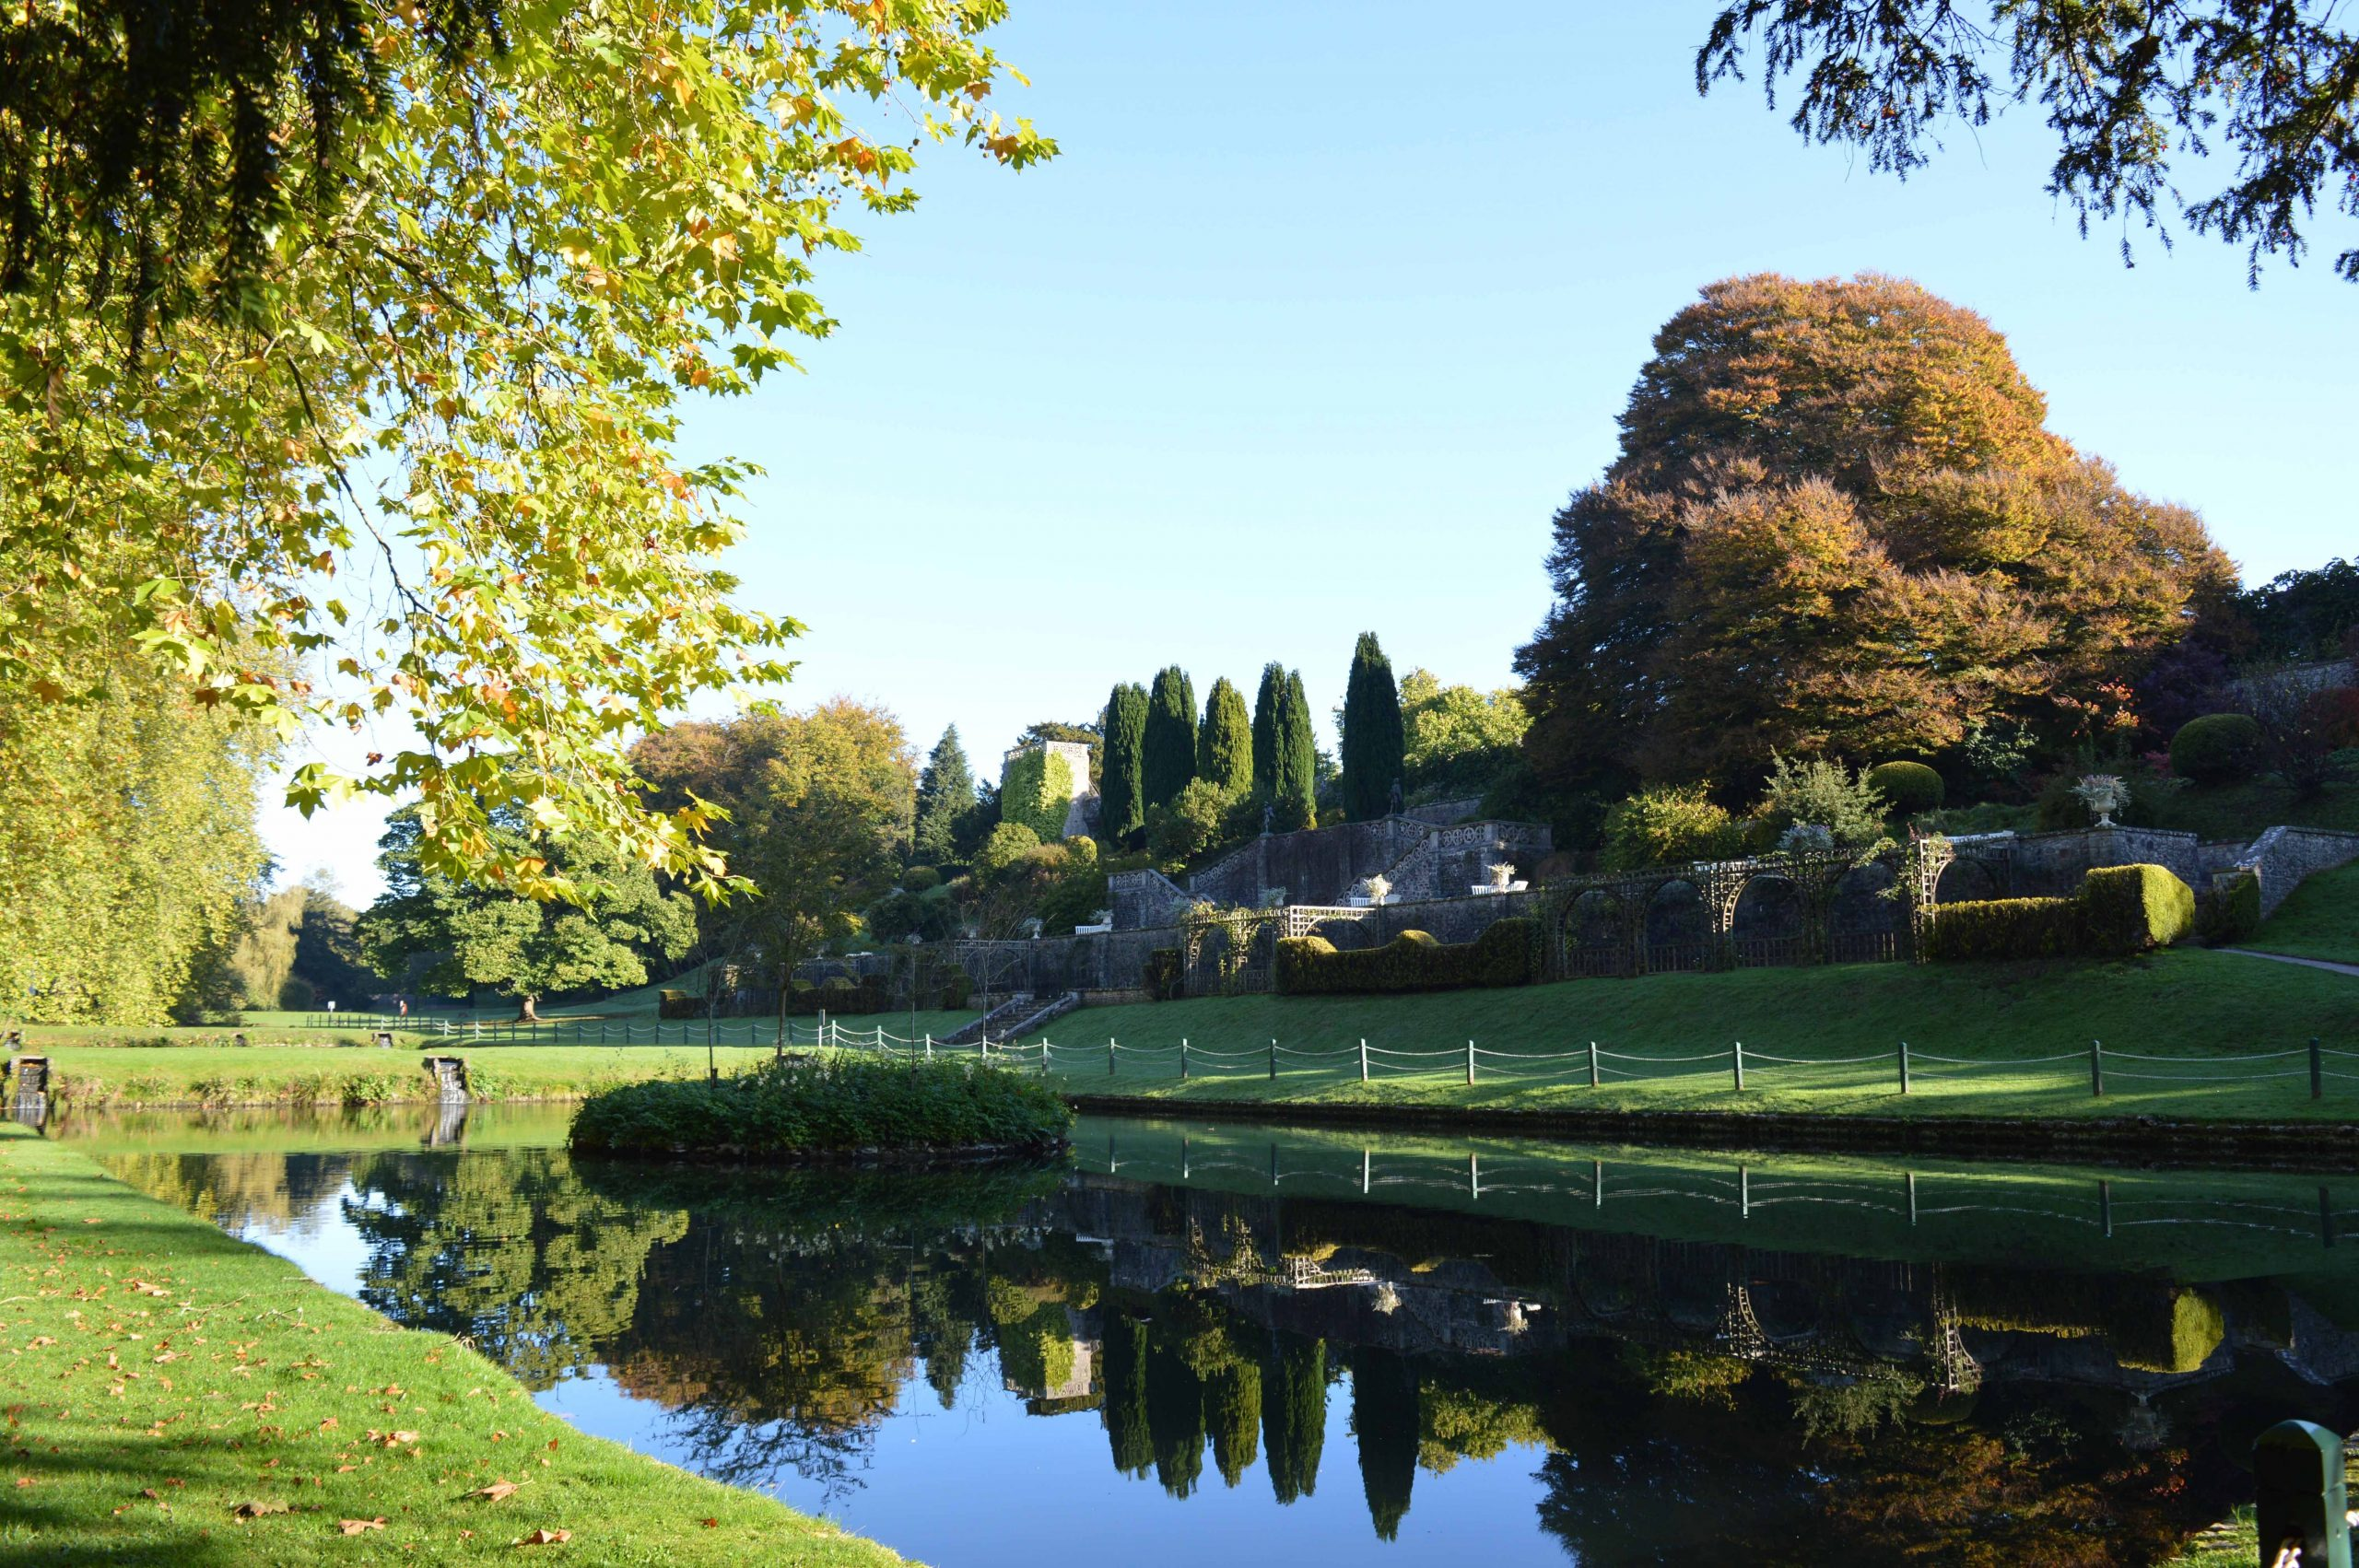 The gardens at St Fagans National History Museum will have to close under the latest restrictions